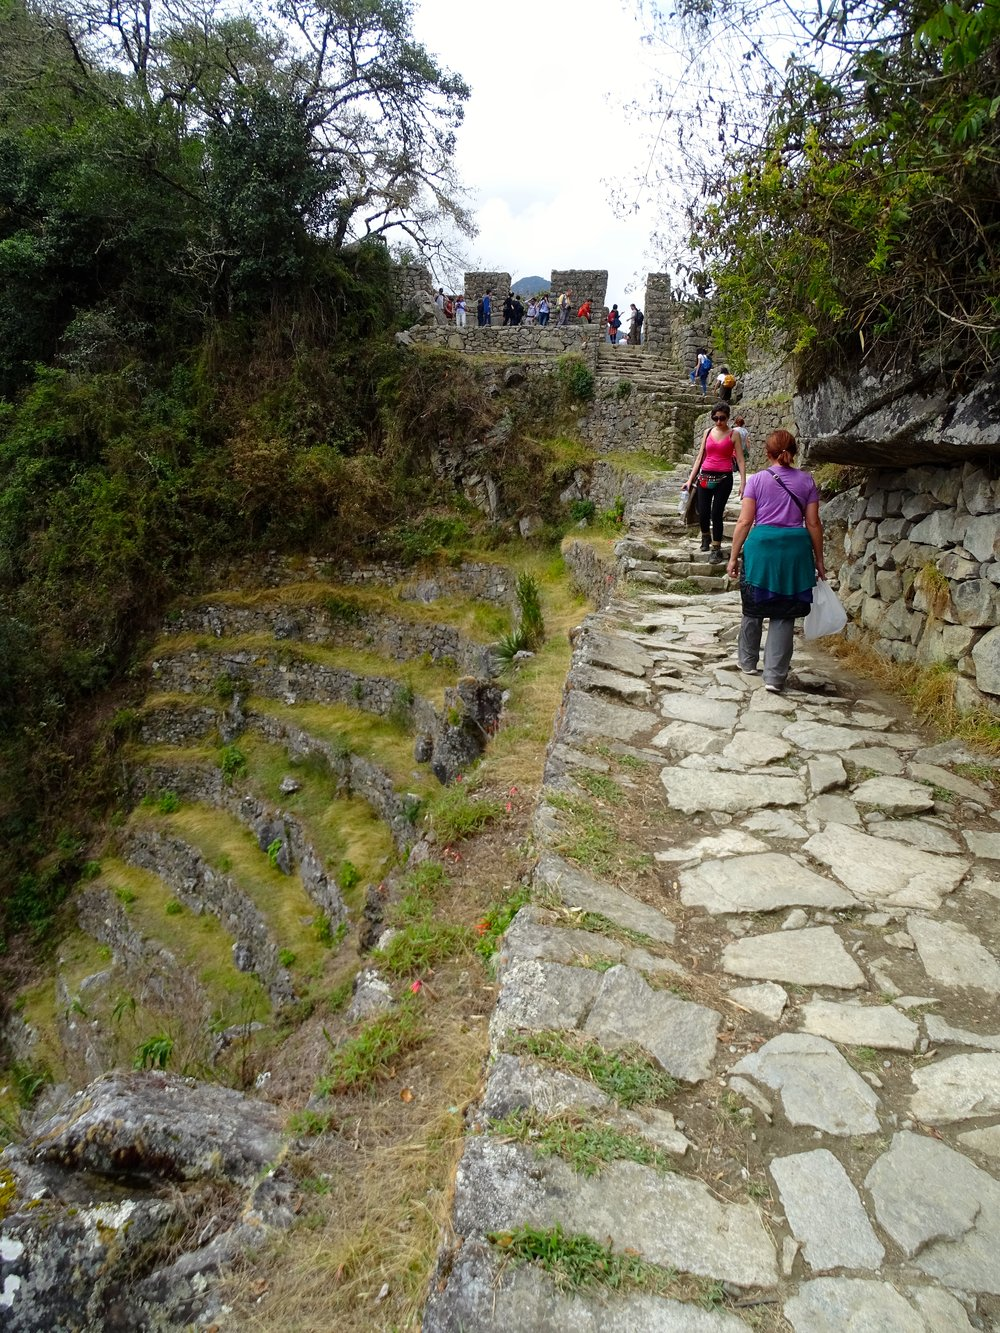 The Inca trail approaching the Sun Gate ahead.  This trail was built to last!